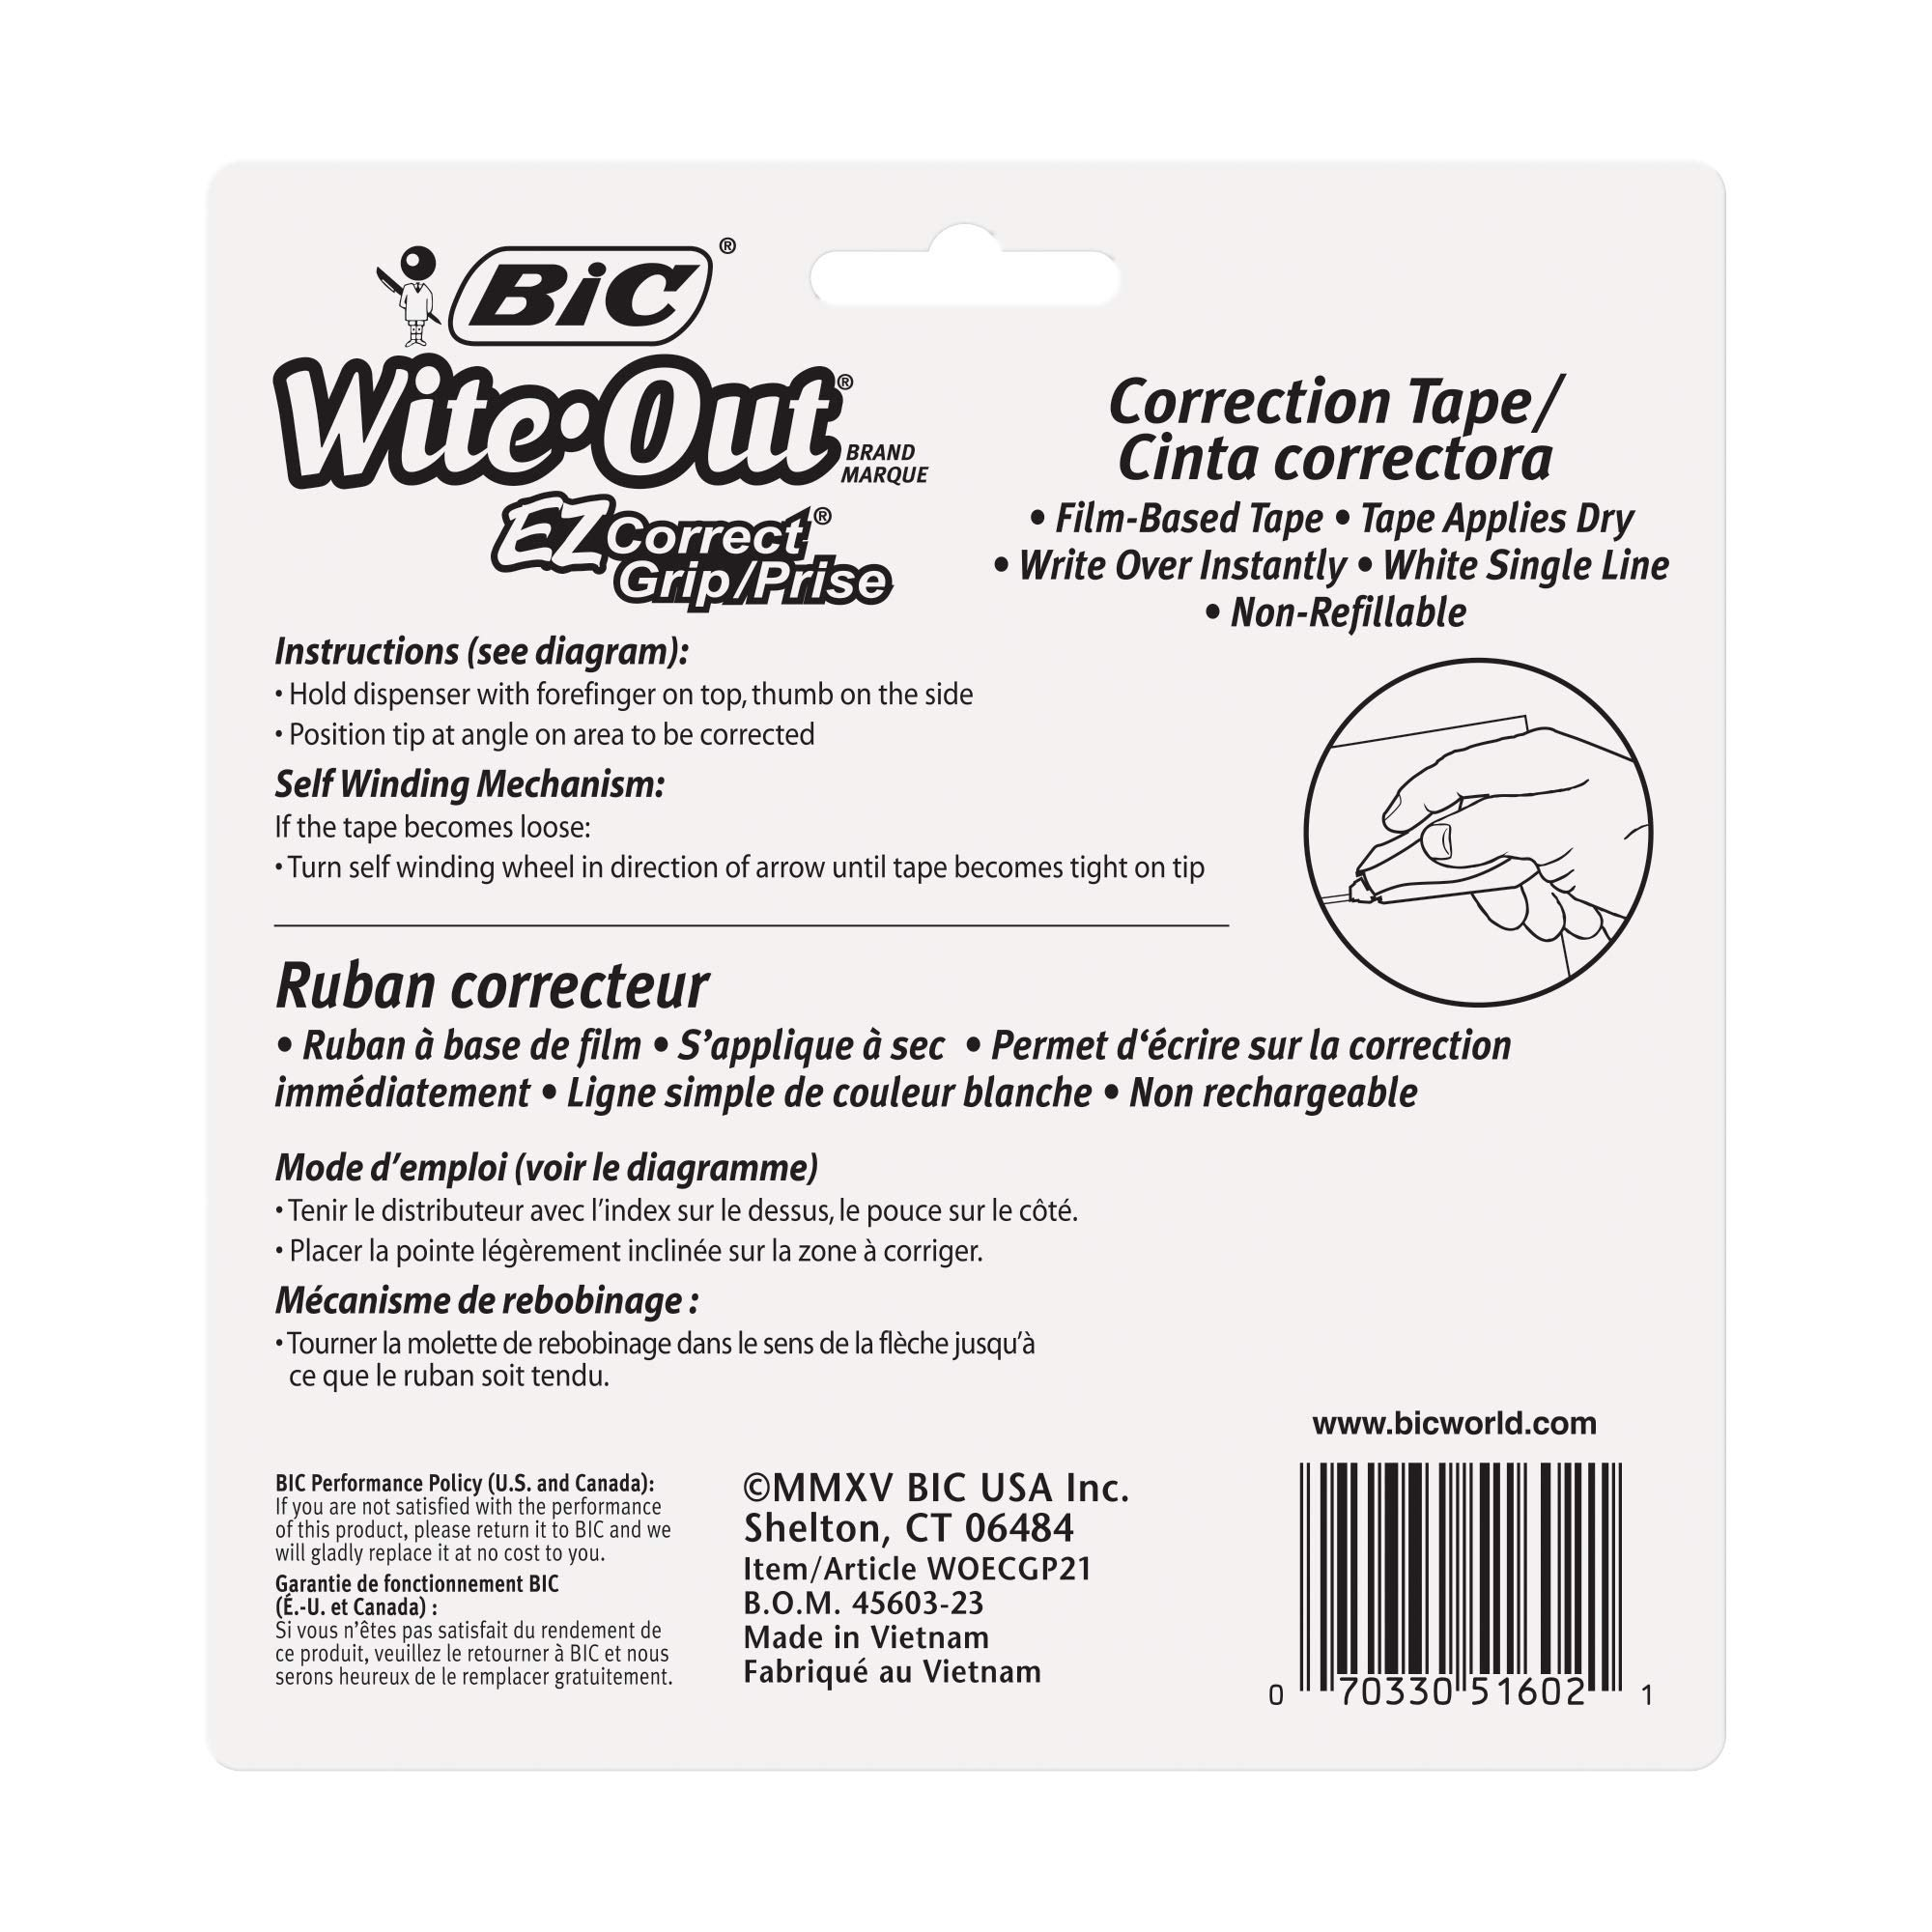 BIC Wite-Out Brand EZ Correct Grip Correction Tape, White, 2-Count by BIC (Image #5)